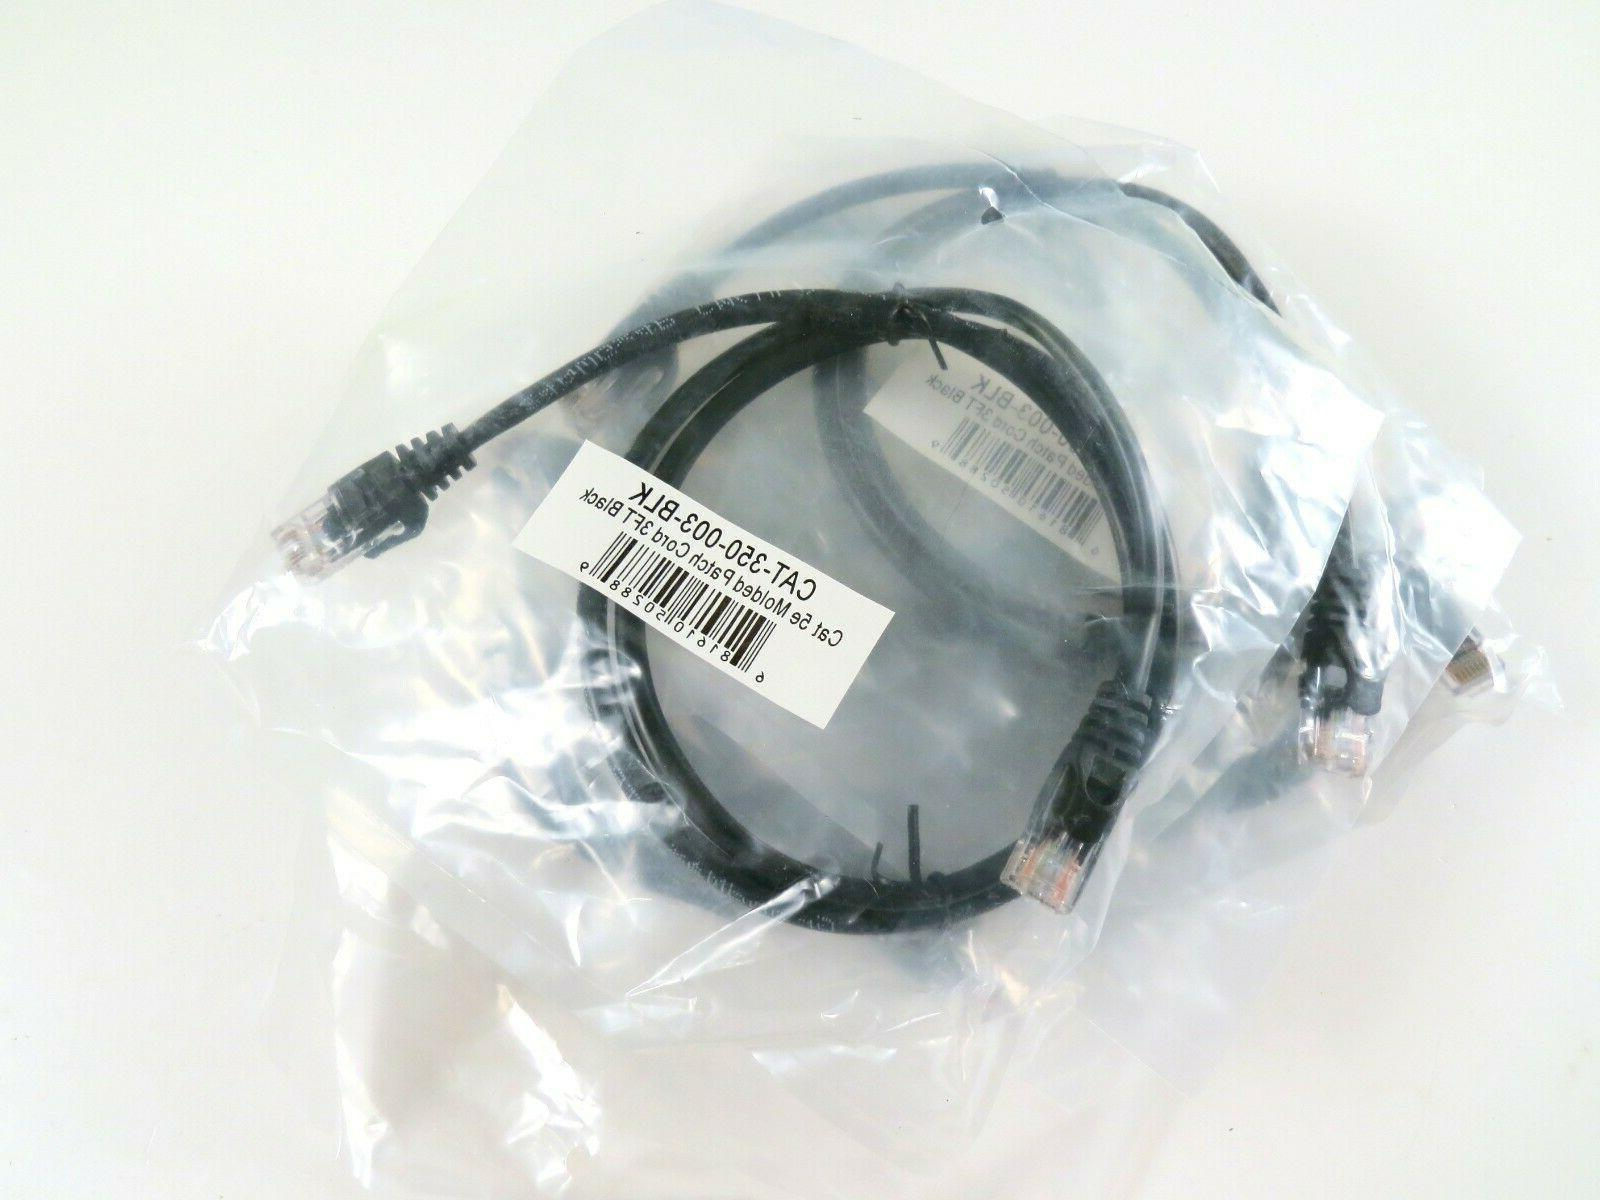 Lot of Patch Cables, 3' Black, Brand